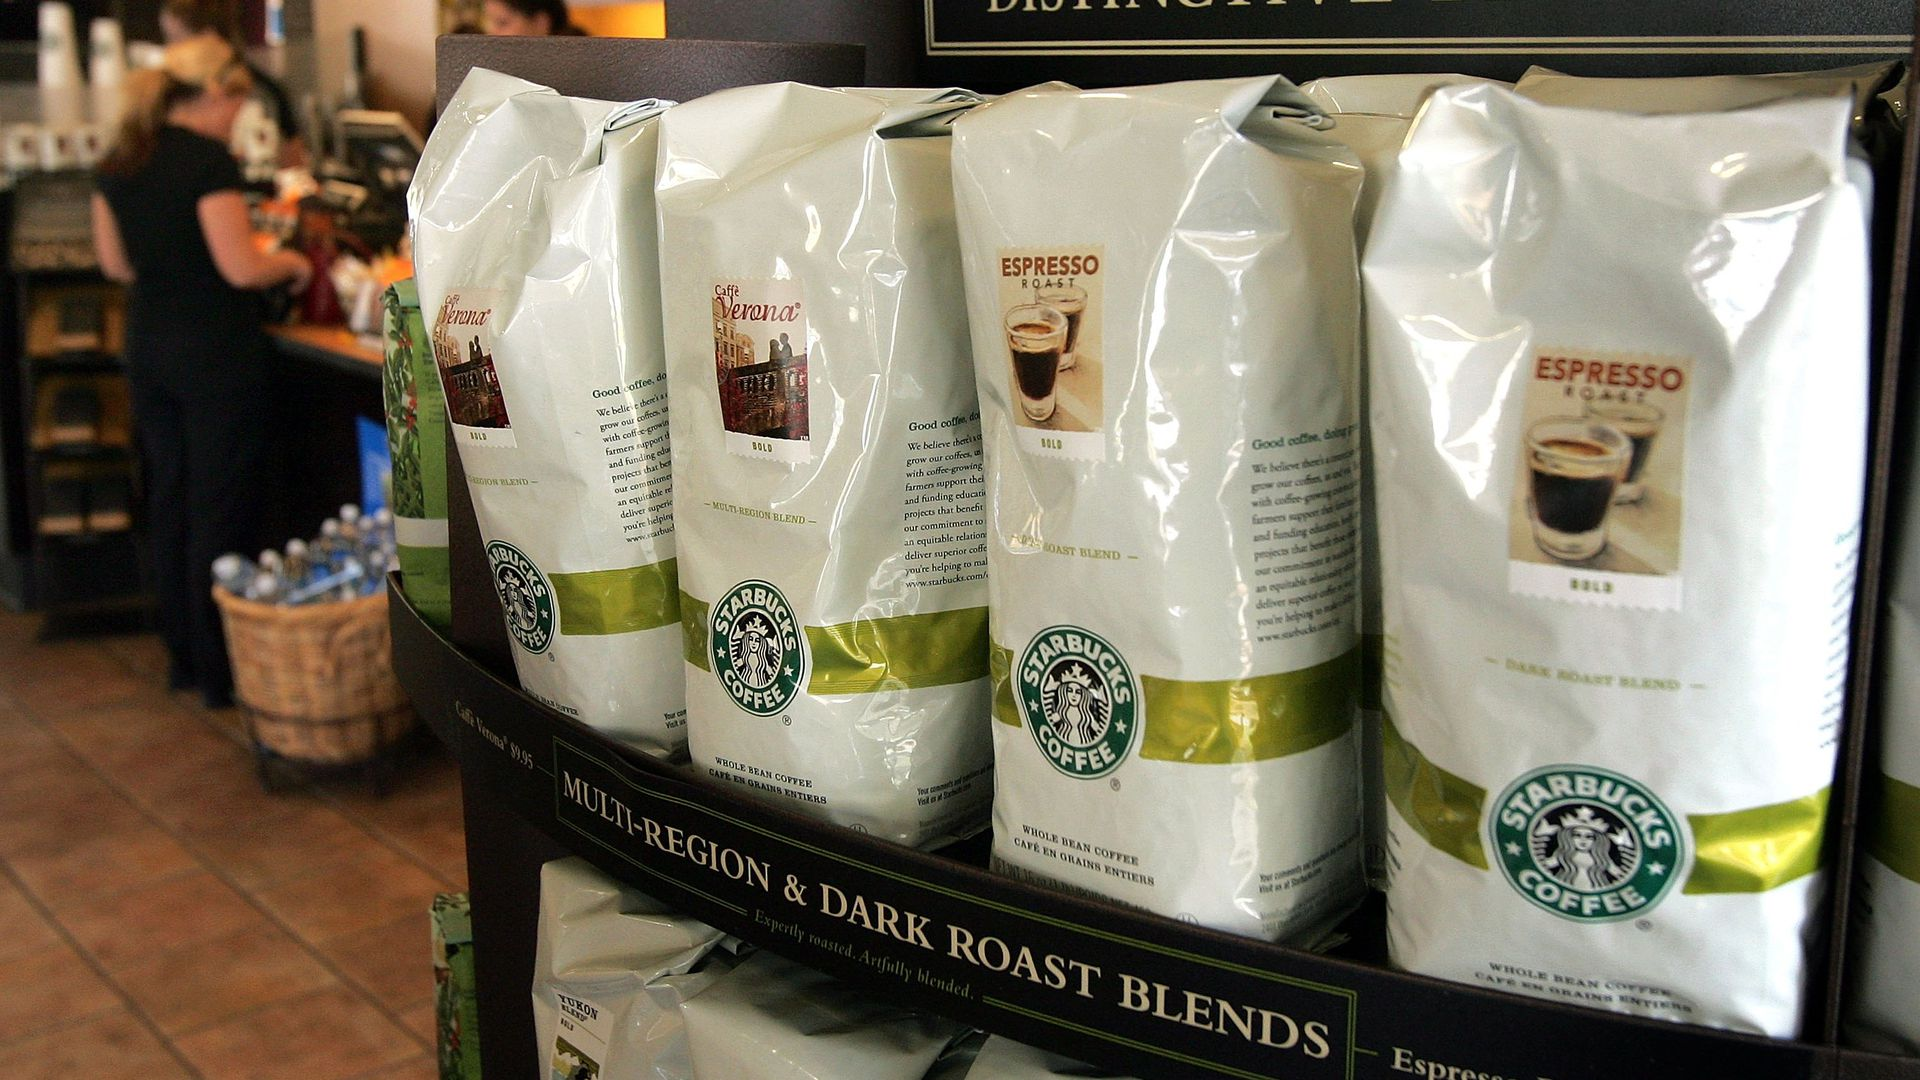 Starbucks coffee beans in bags